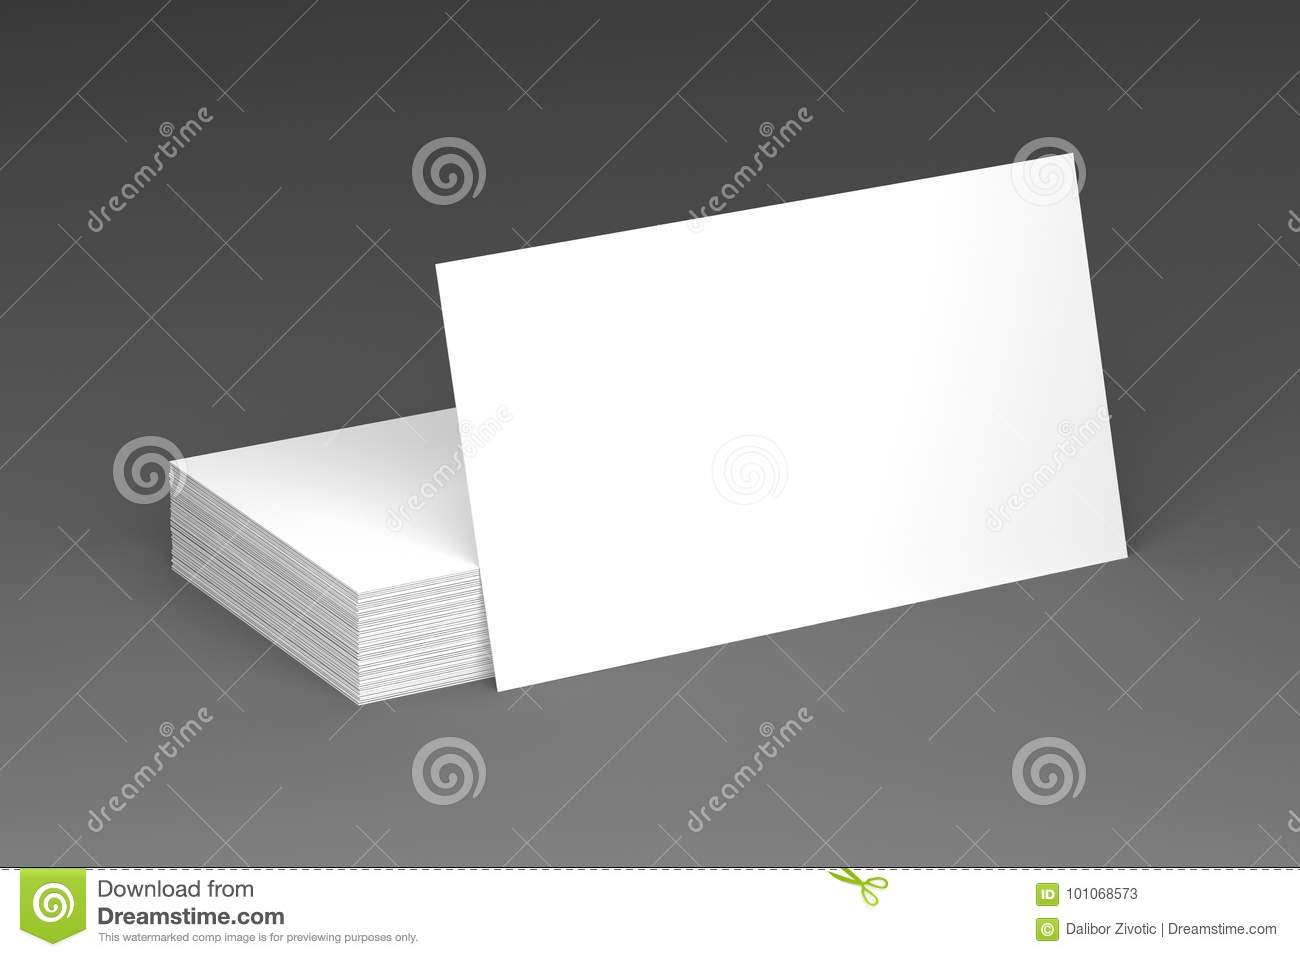 Business cards blank mockup template 3d illustration stock download business cards blank mockup template 3d illustration stock illustration illustration of card flashek Images